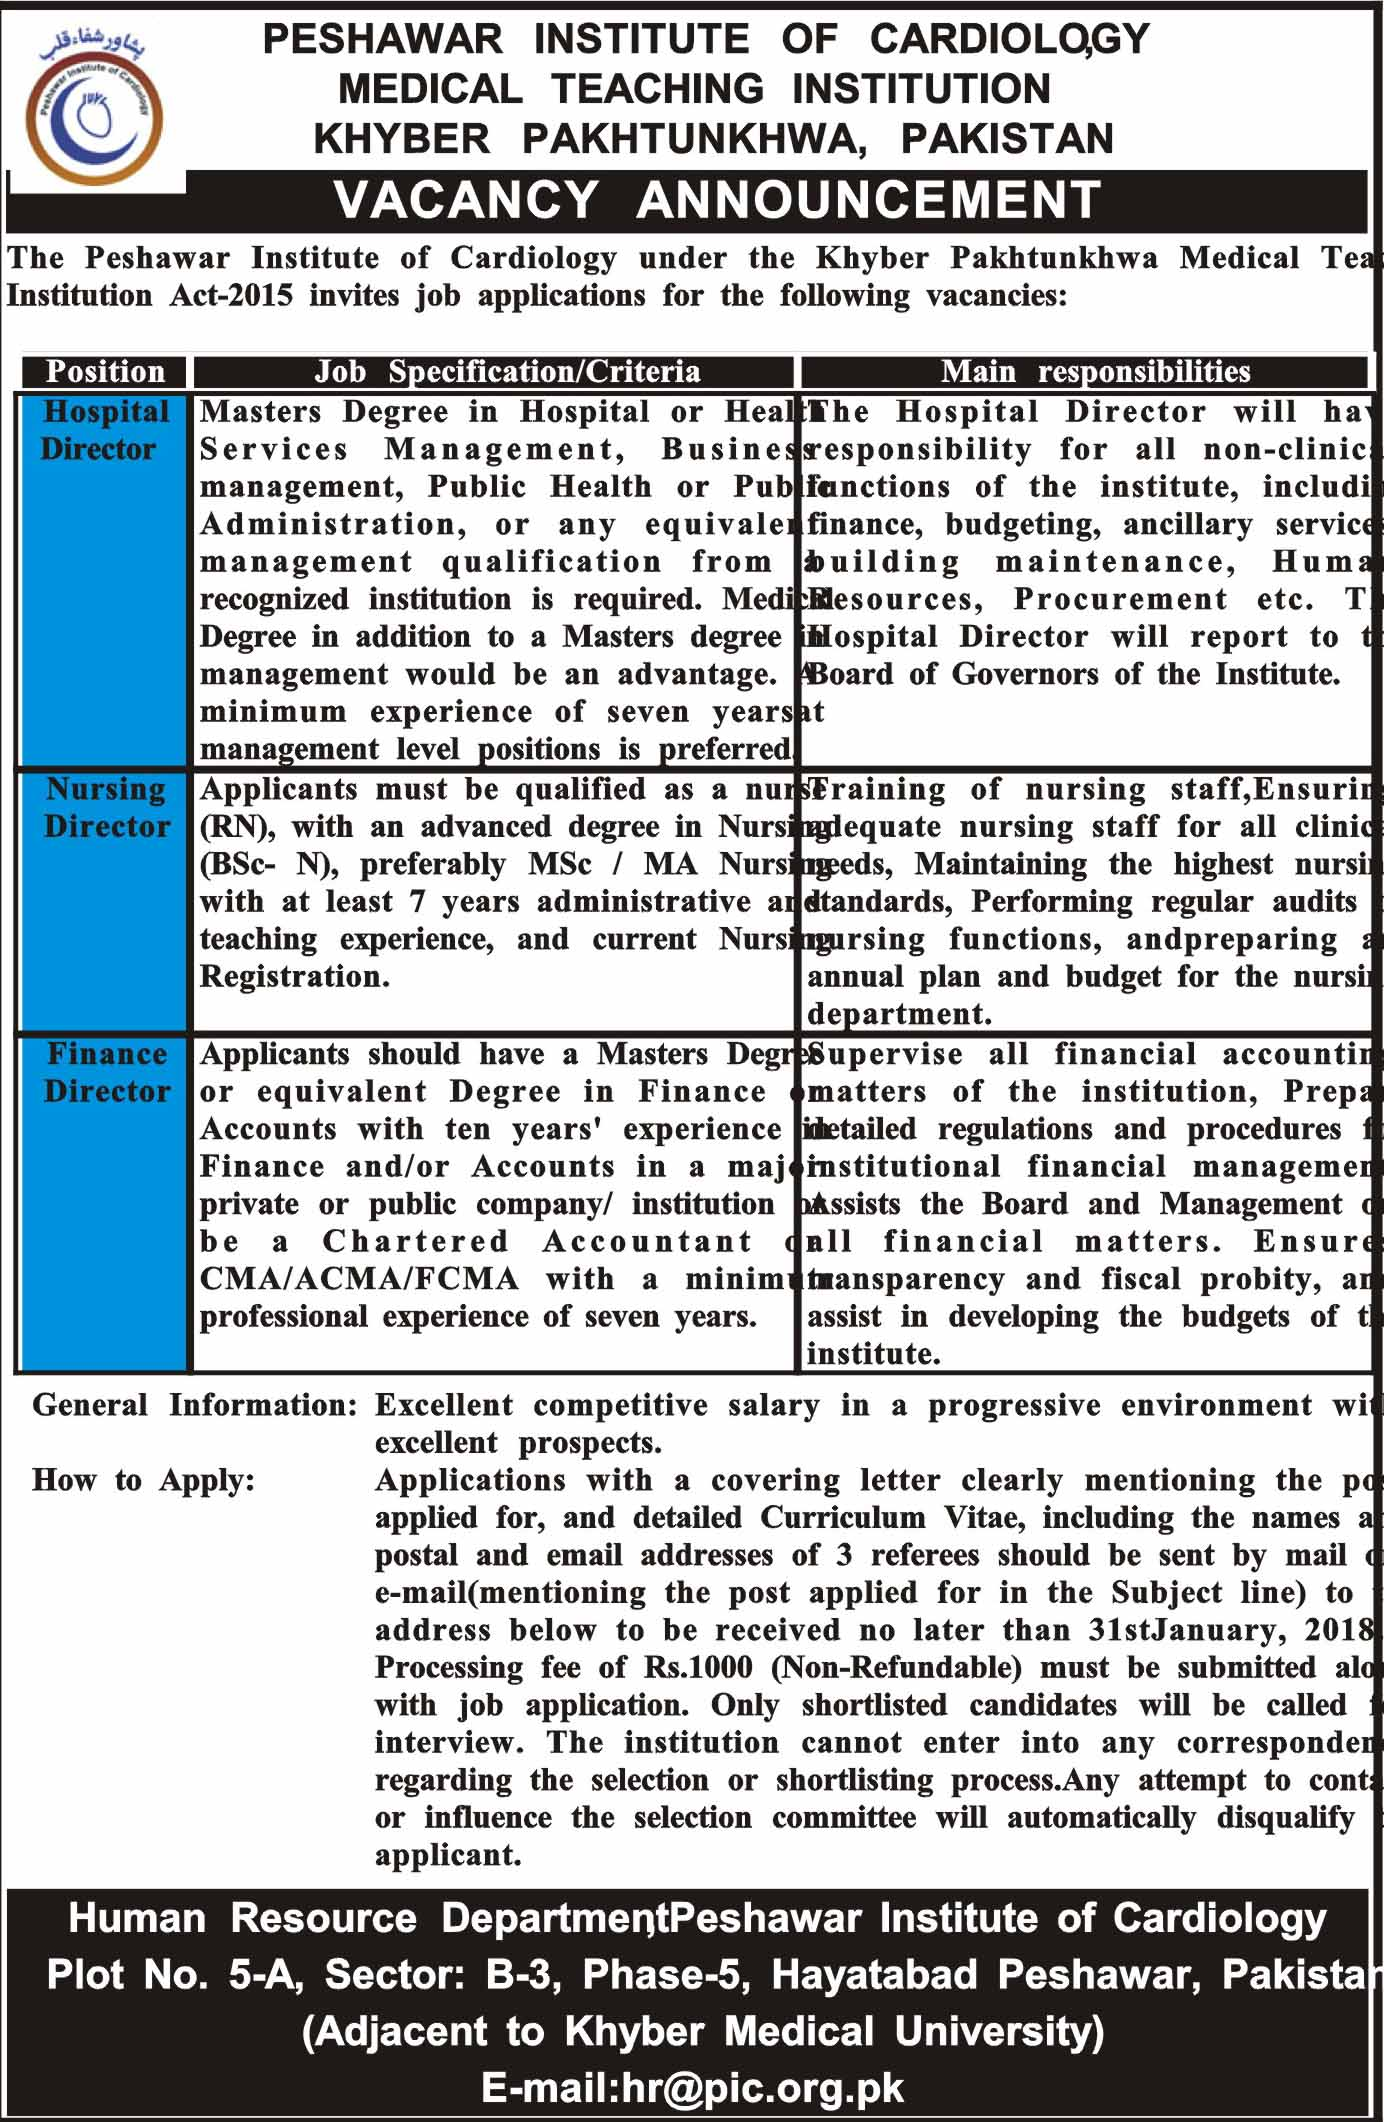 Khyber Pakhtunkhwa, Peshawar Institute of Cardiology, Medical Teaching Institution, 03 Jobs, 16 January 2018 Daily Mashriq Newspaper